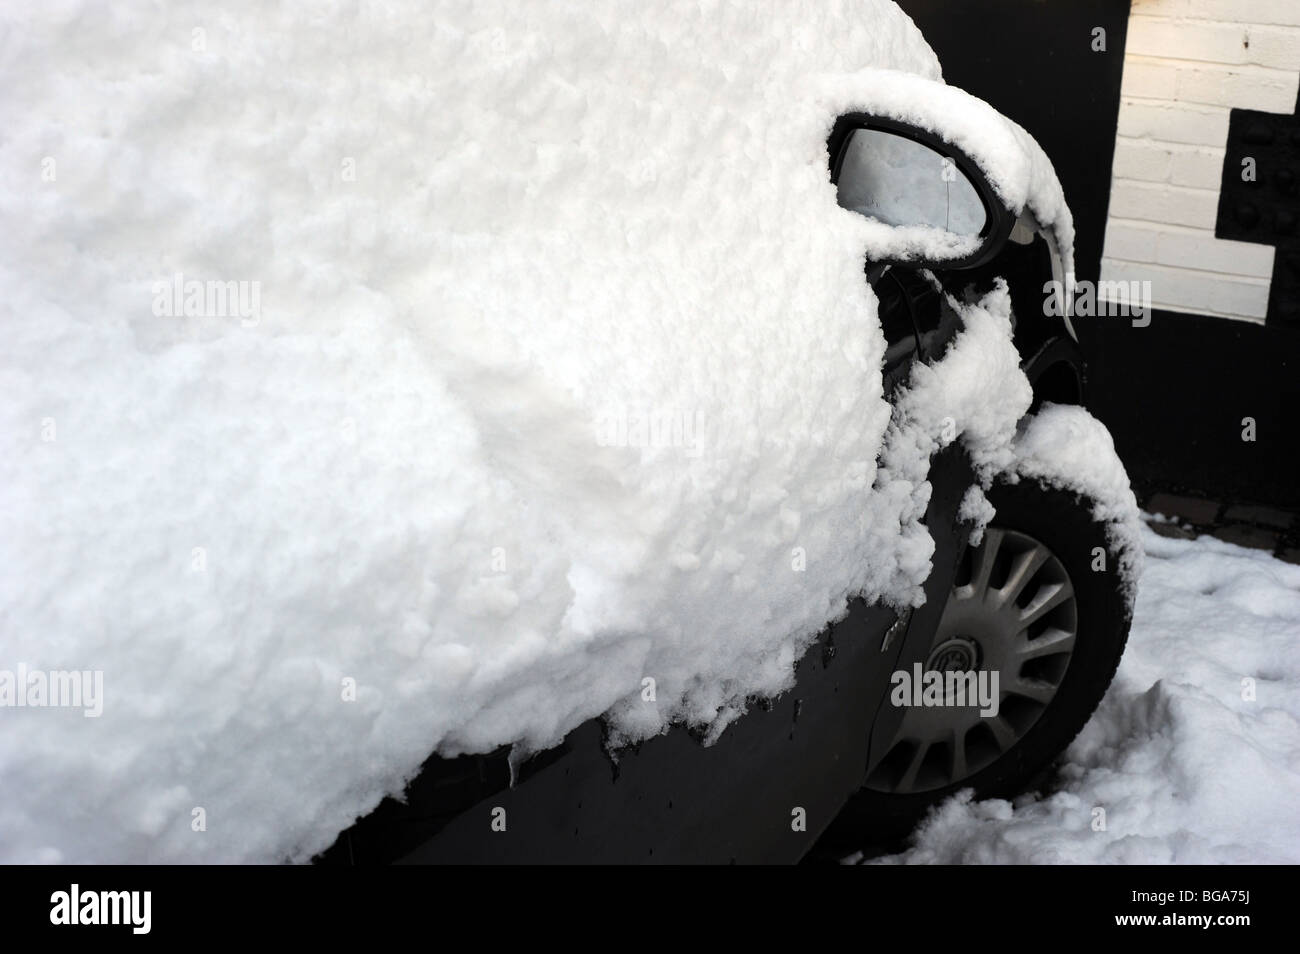 Heavy snowfall covers parked cars in brighton - Stock Image